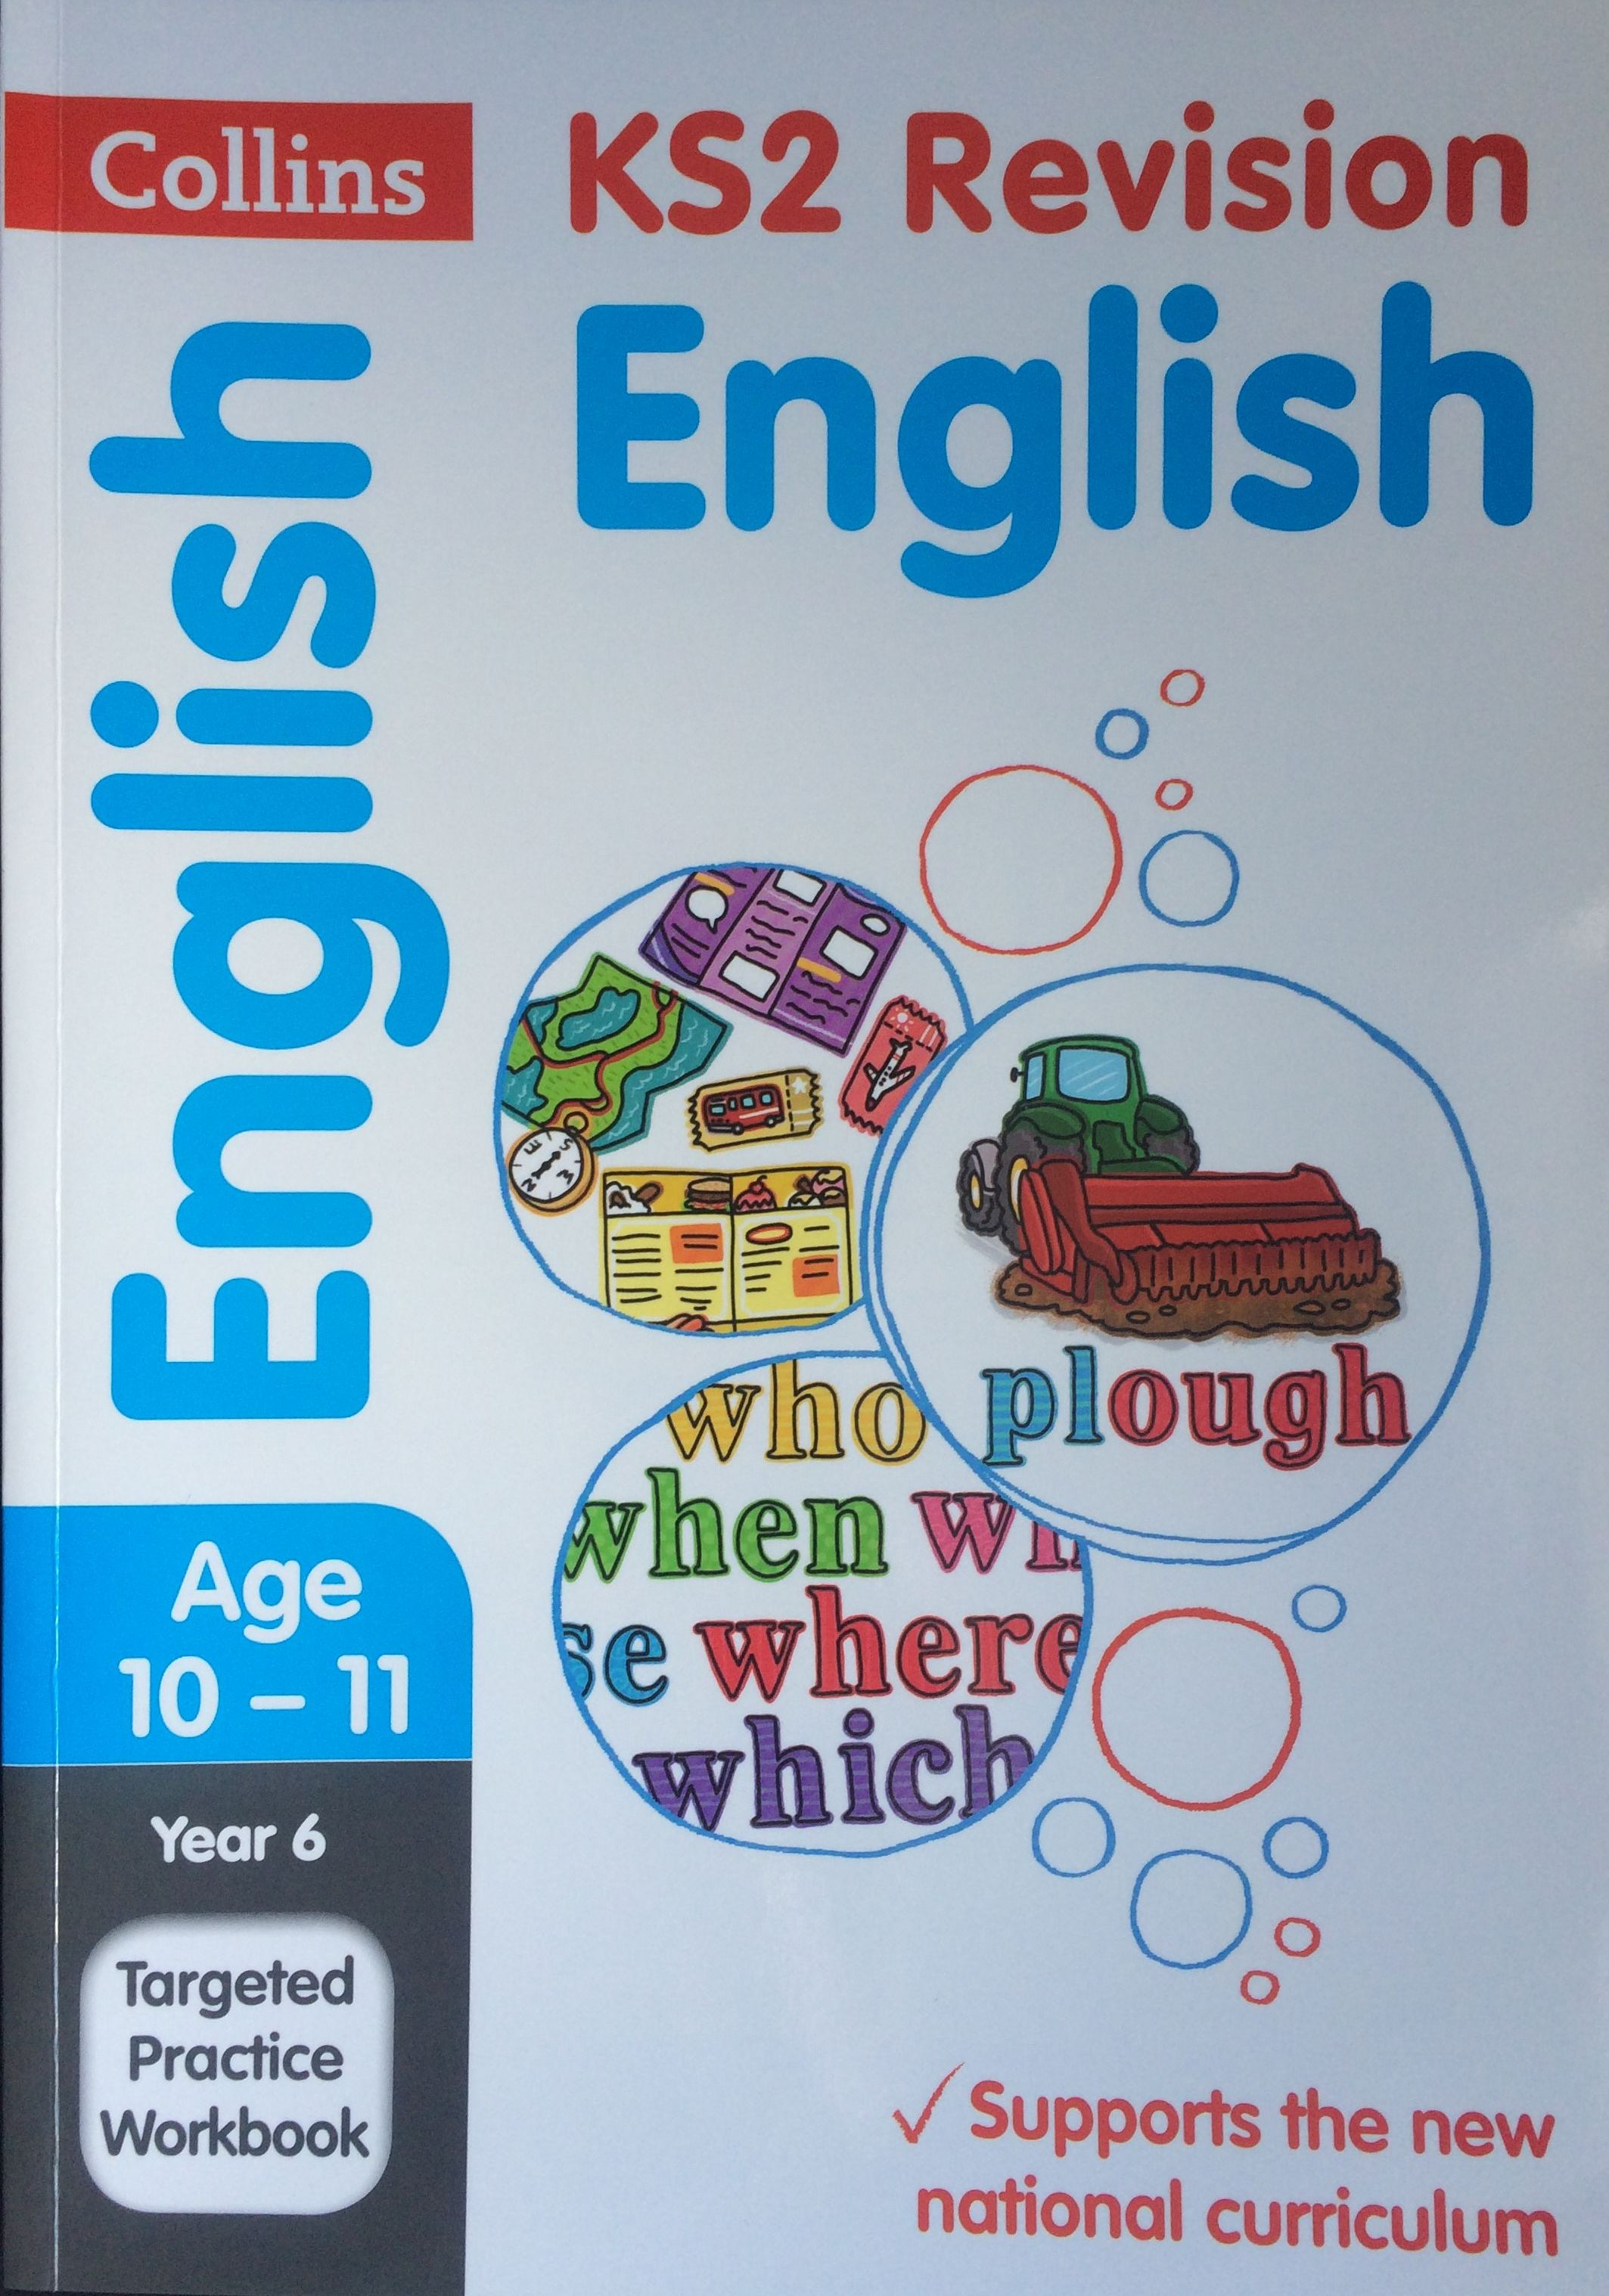 Collins KS2 Revision English Targeted Practice Workbook front